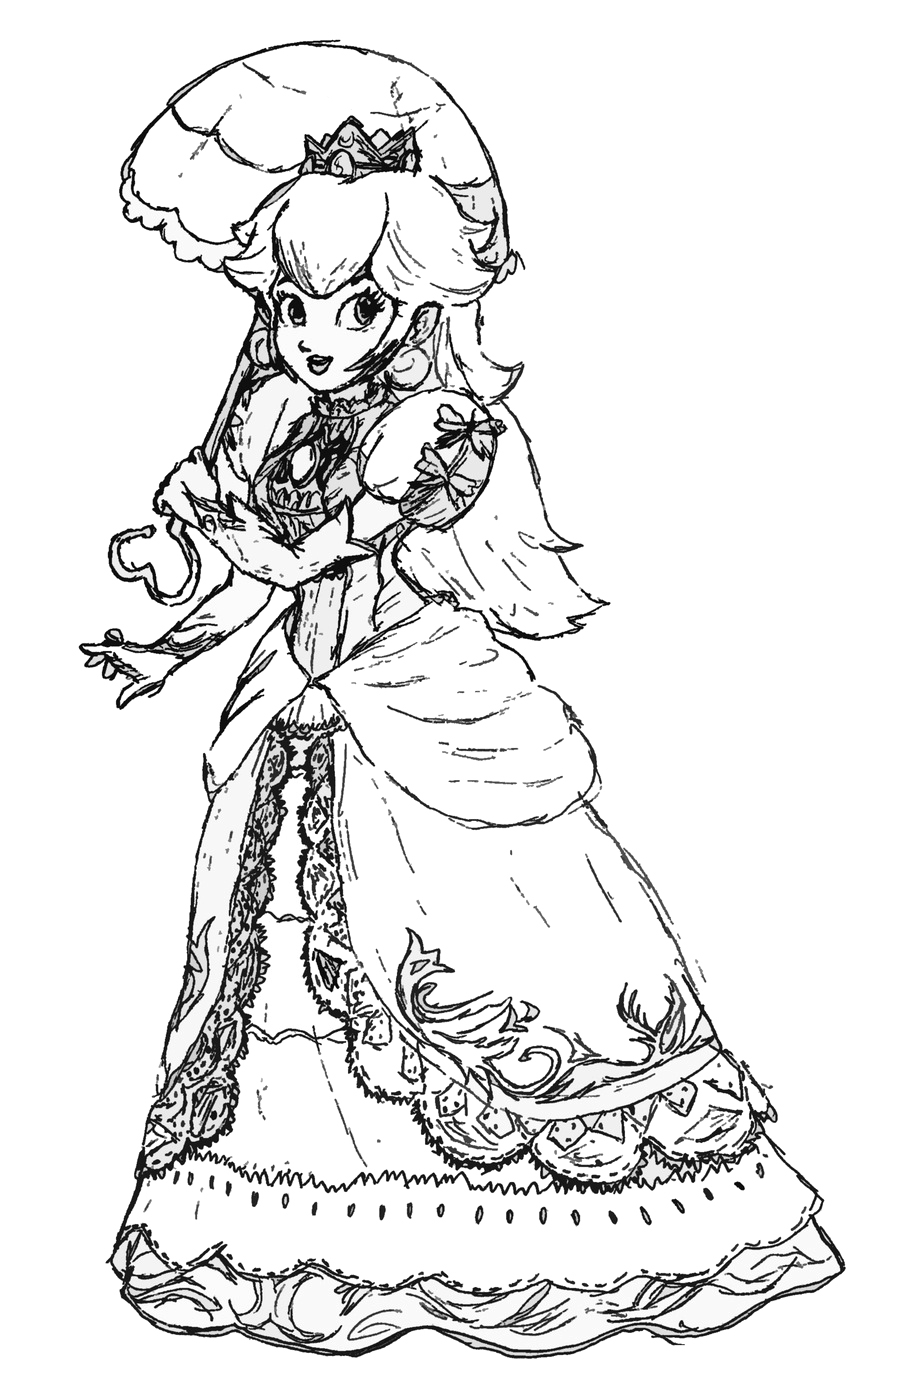 Free Princess Peach Coloring Pages For Kids   free coloring pages princess peach